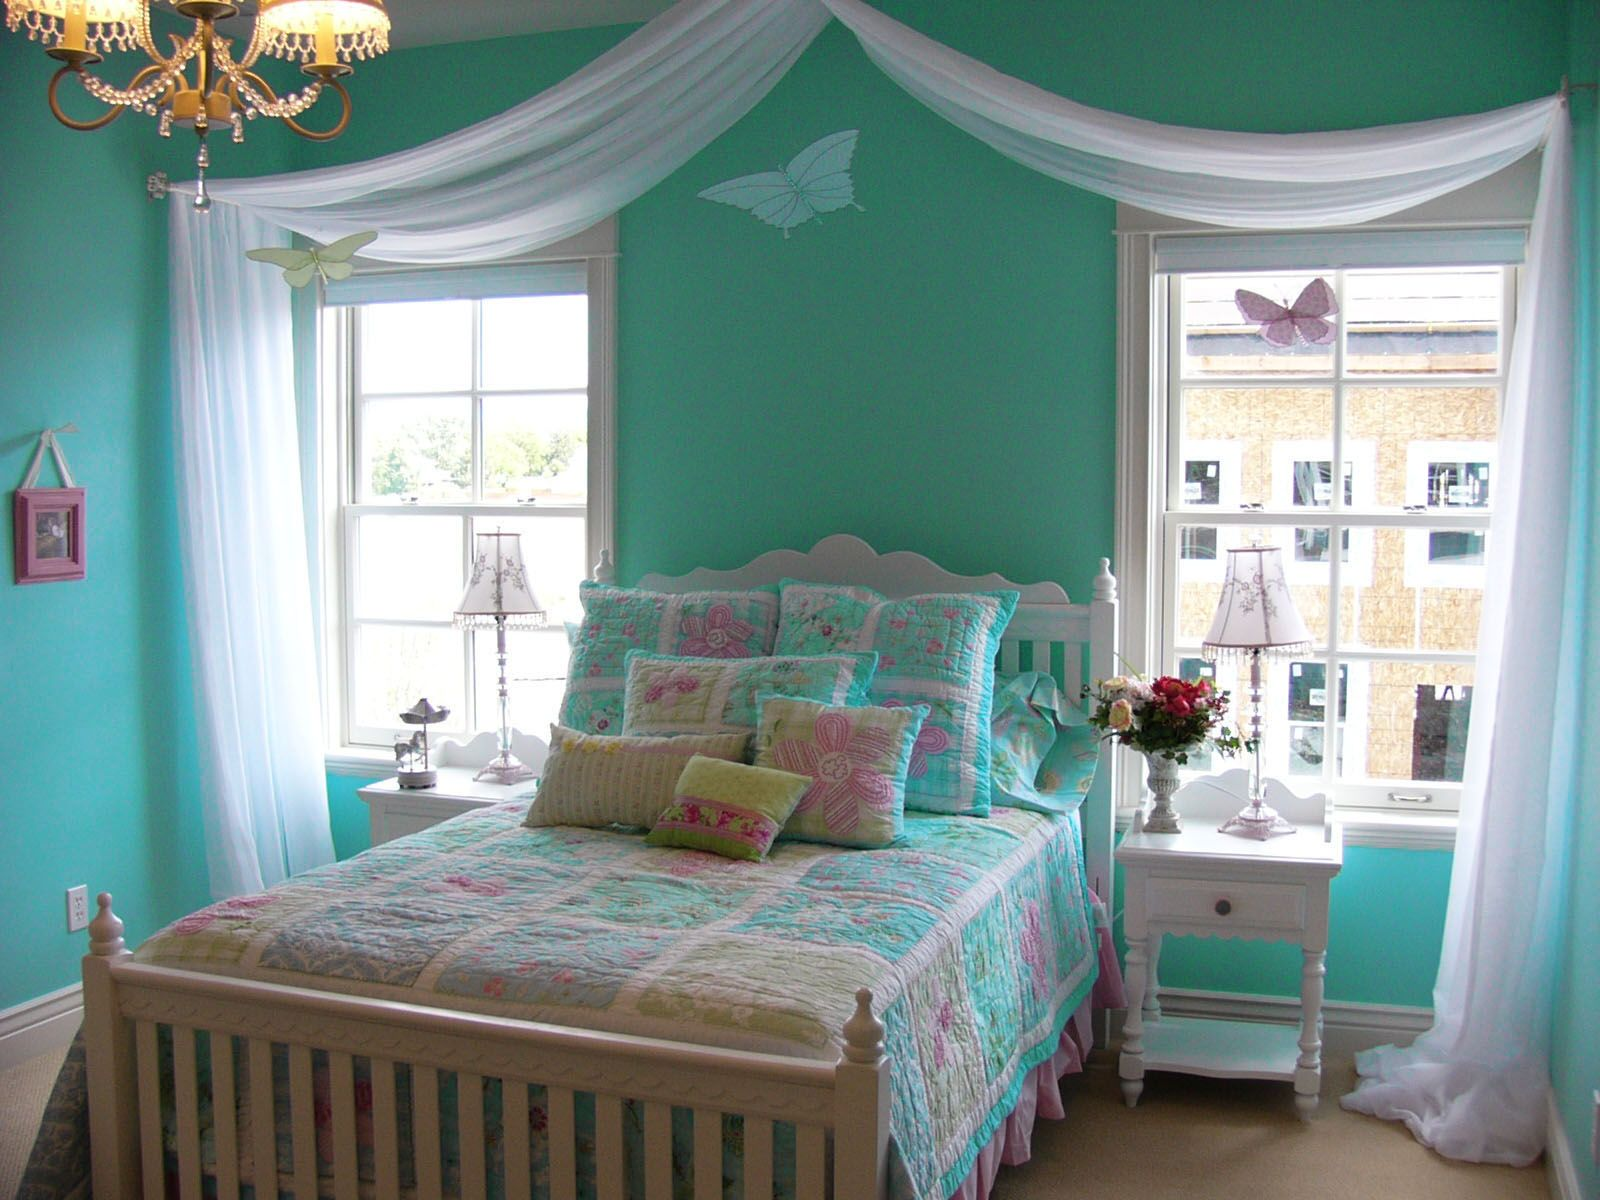 Wh what are good colors for bedrooms - Beautiful Girls Room Designs In Turquoise Color Stunning Turquoise Girls Bedroom Design Inspiration With White